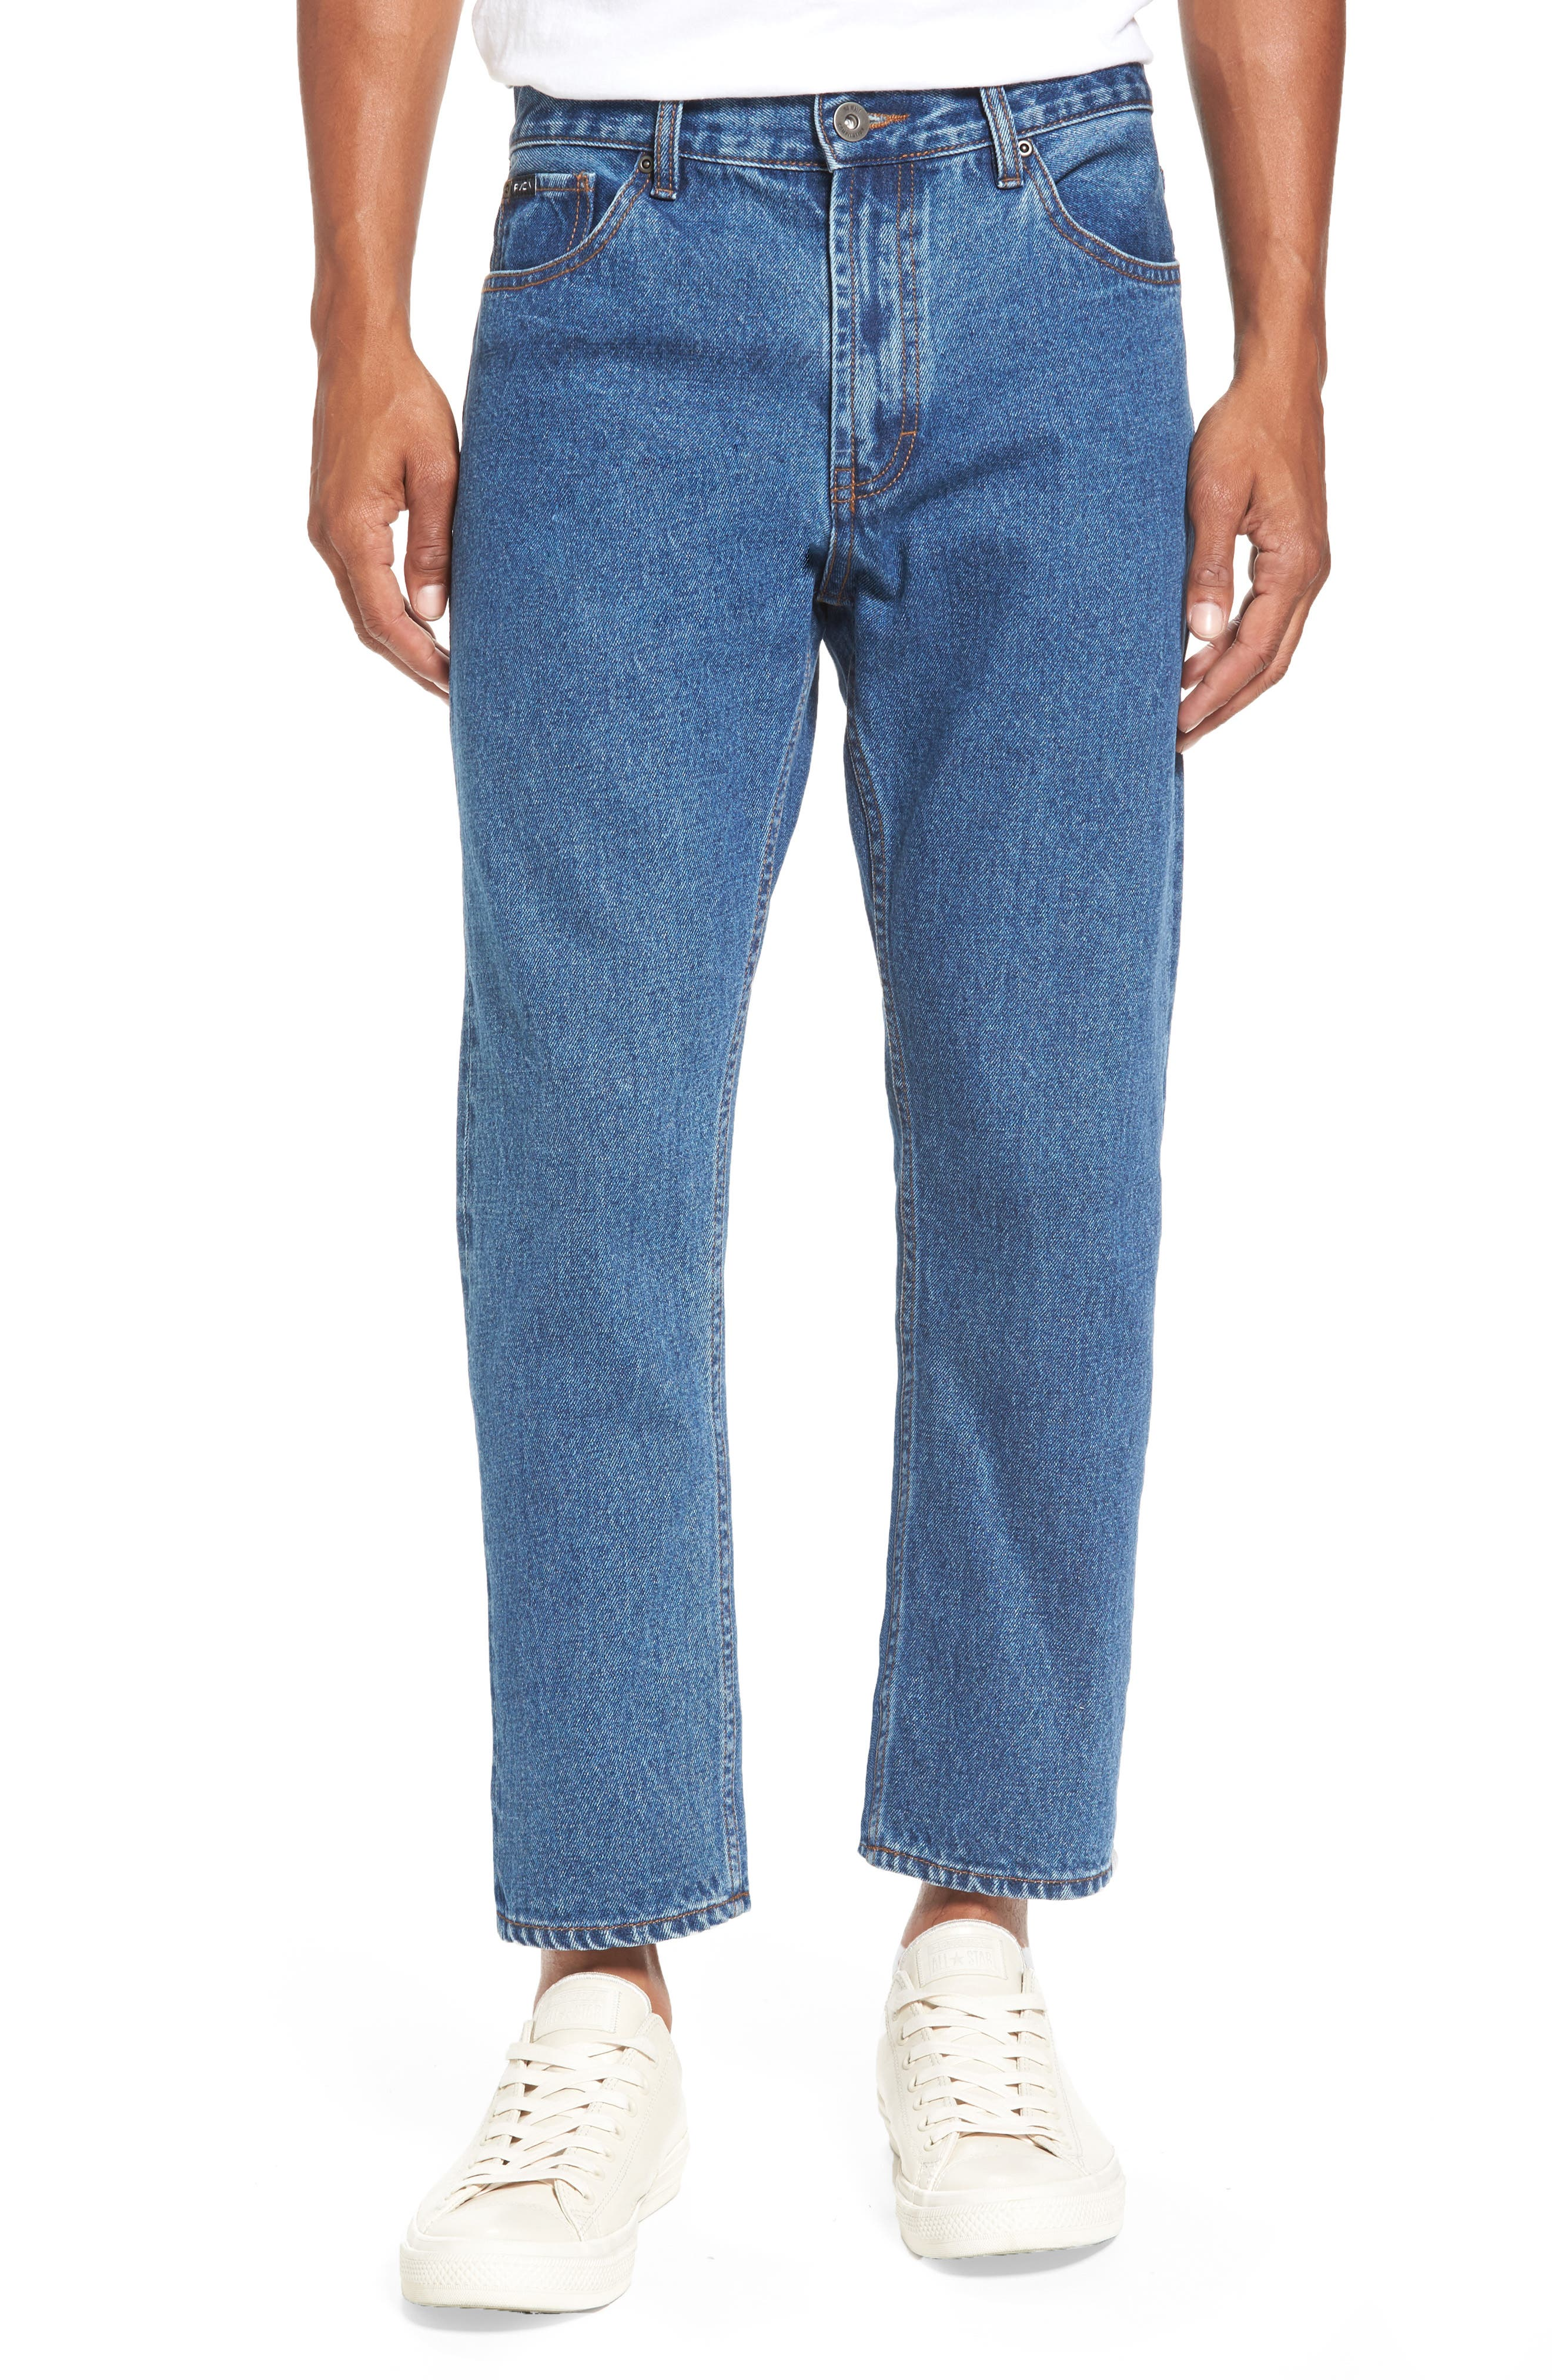 RVCA No Wave Flood Crop Jeans (Vintage Indigo)